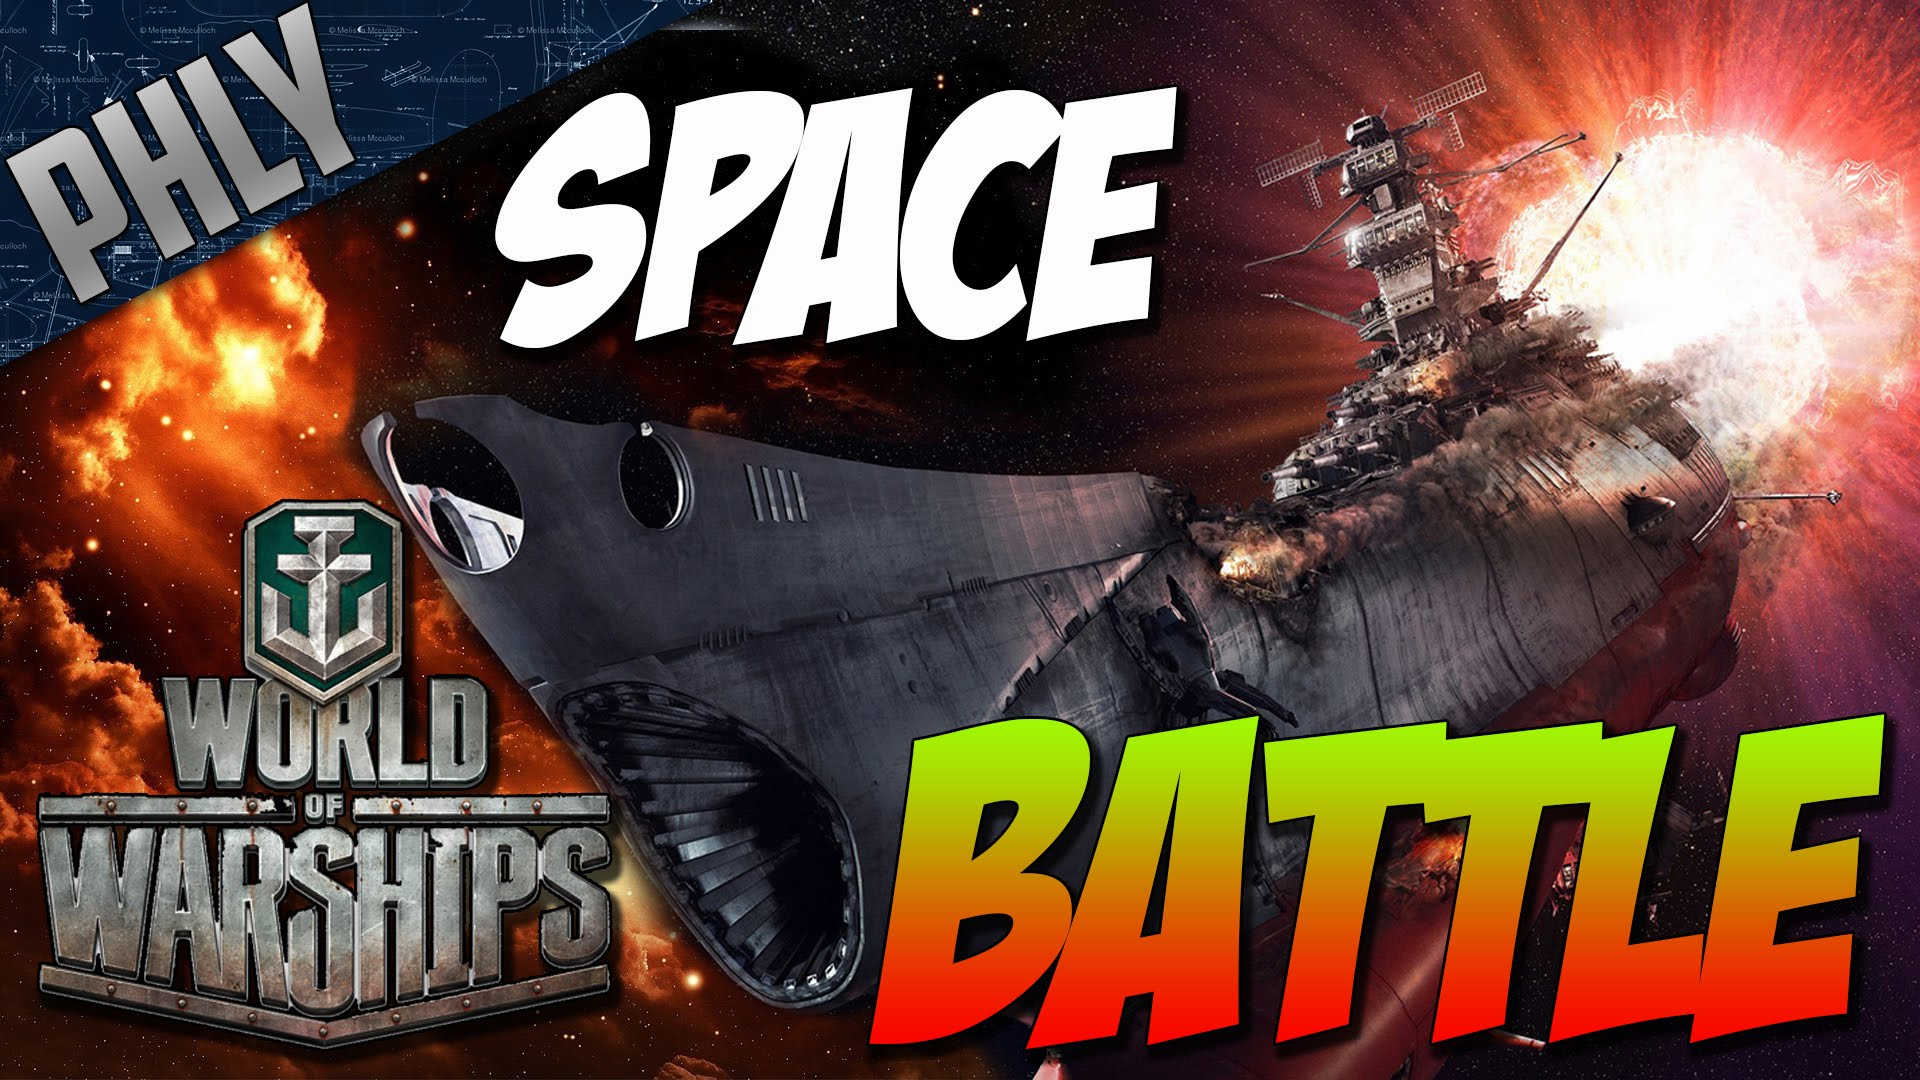 how to play world of warships space